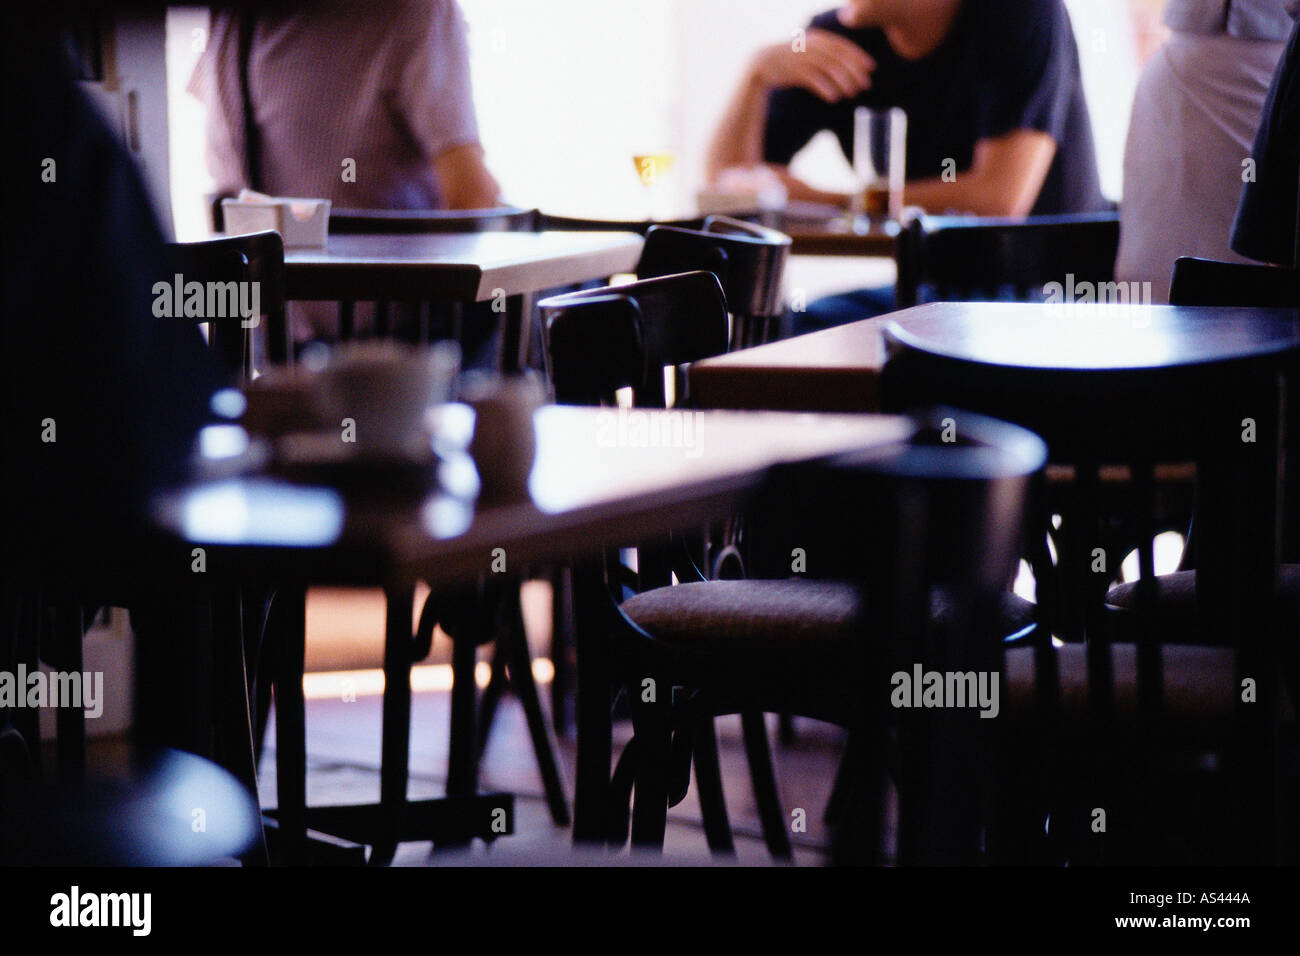 Two men being served in cafe Stock Photo